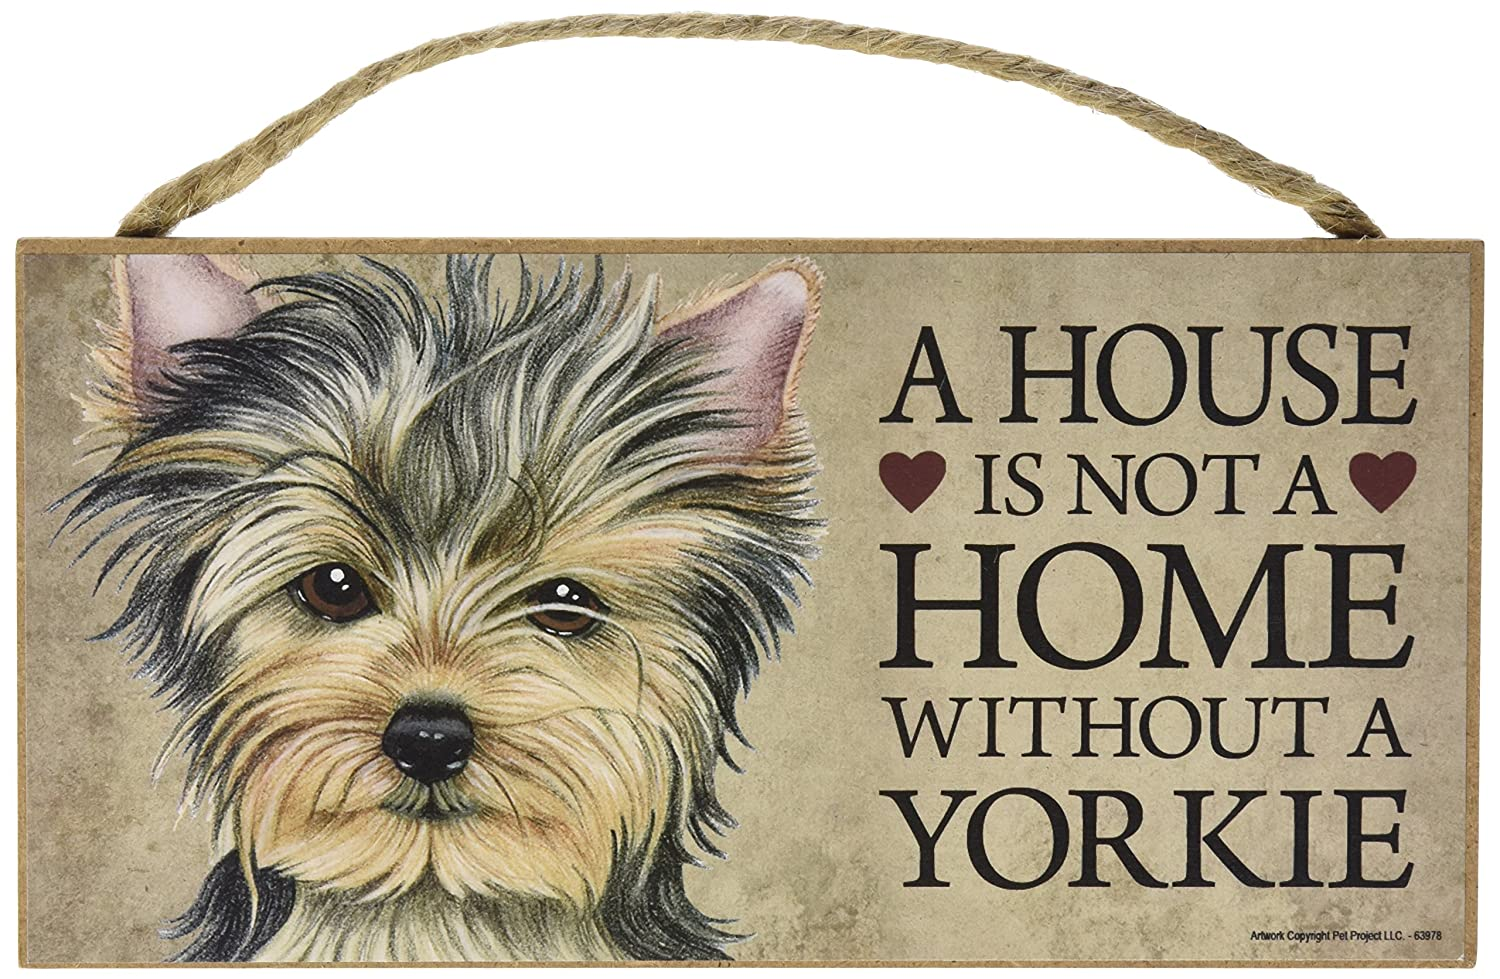 A House Is Not A Home Without A Yorkie - 5x10 Wooden Sign Yorkshire Terrier Dog Gift